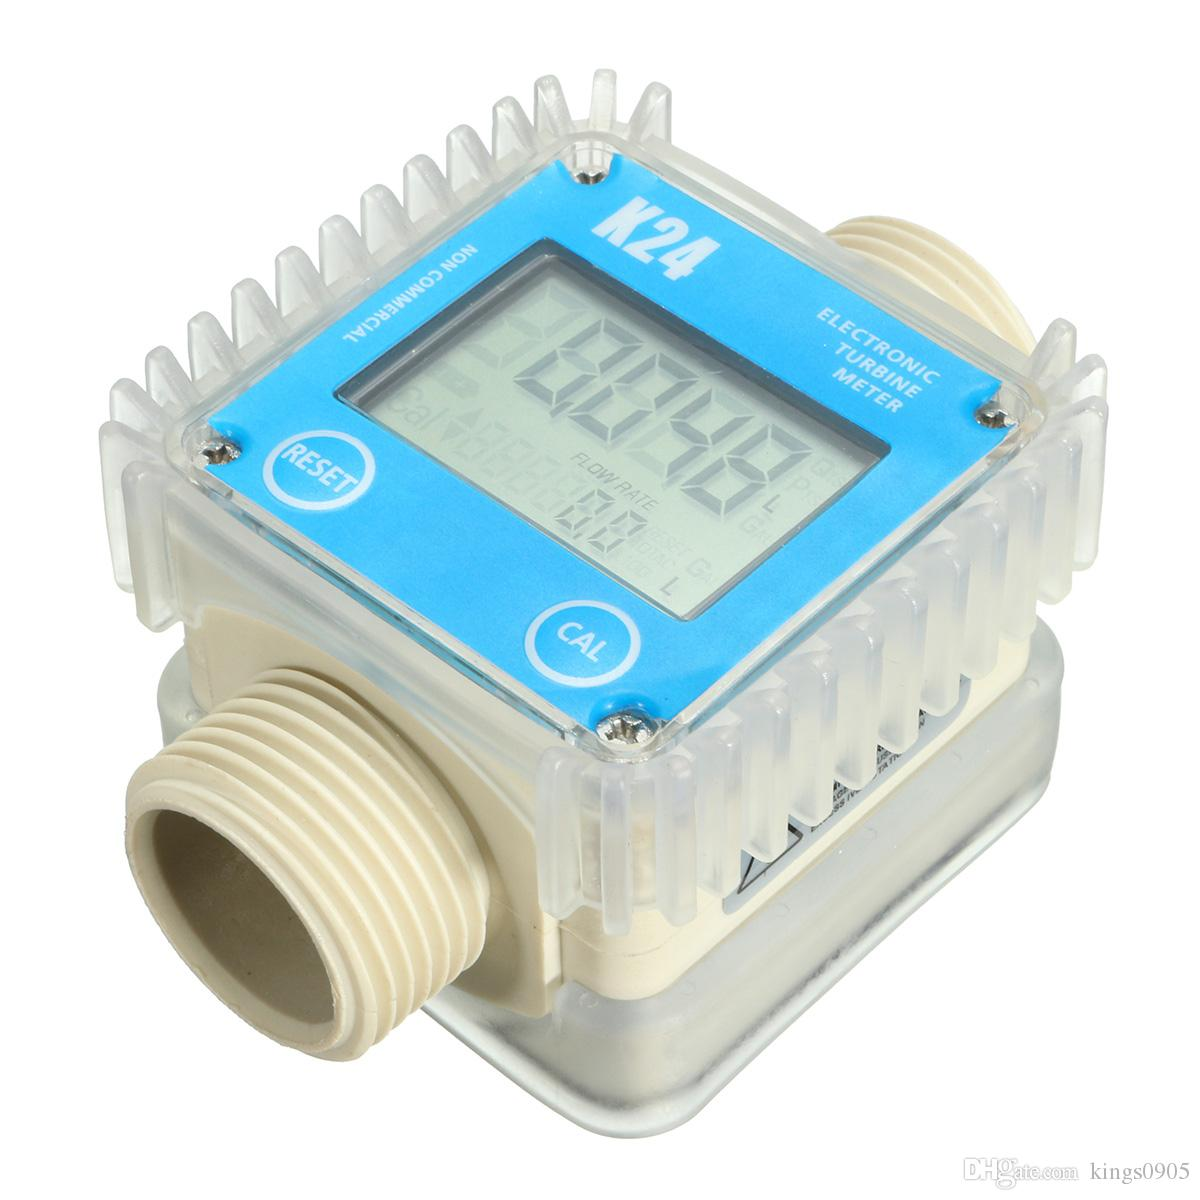 """Fuel Flow Meter K24 1"""" -Turbine- Digital -Diesel- Guage Counter For Chemicals Water 0.6MPa 10-120L/Min"""